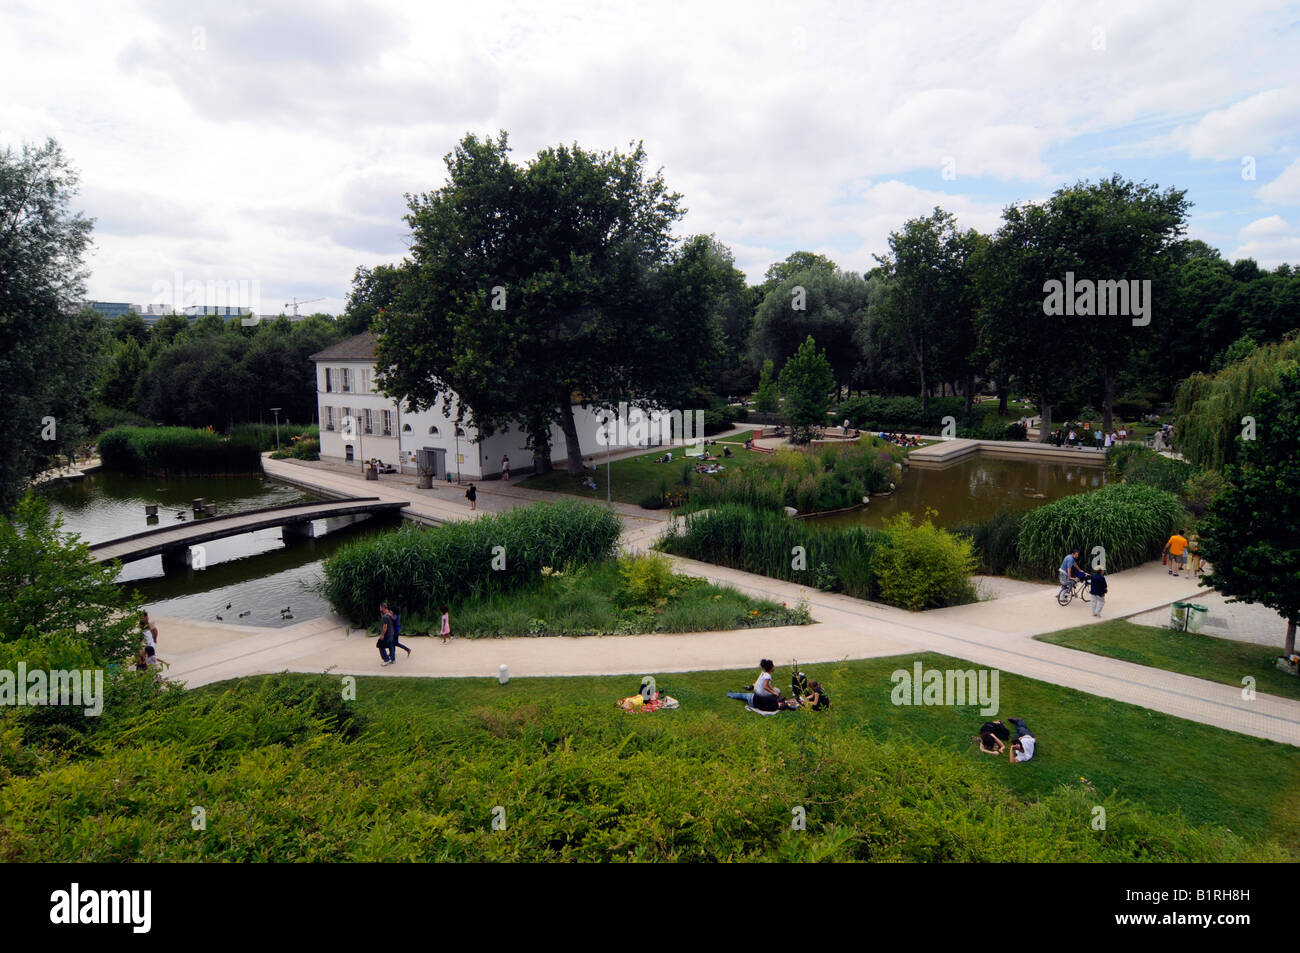 Overview of the Parc de Bercy, a garden landscaped in the 90s. Photo taken in Paris, France - Stock Image